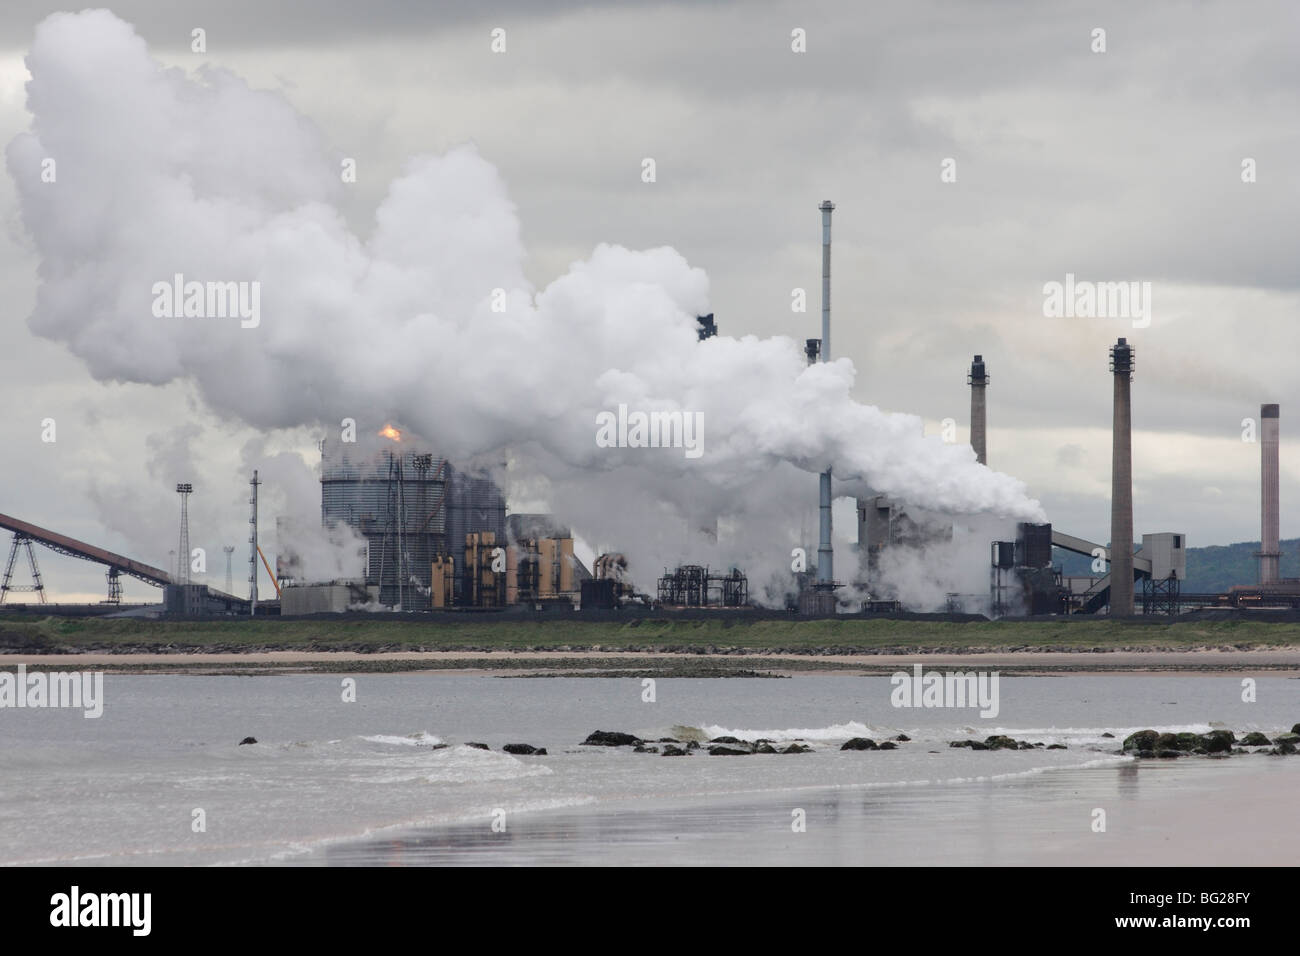 Redcar SSI steelworks blast furnace and coke ovens. Redcar, north east England Stock Photo